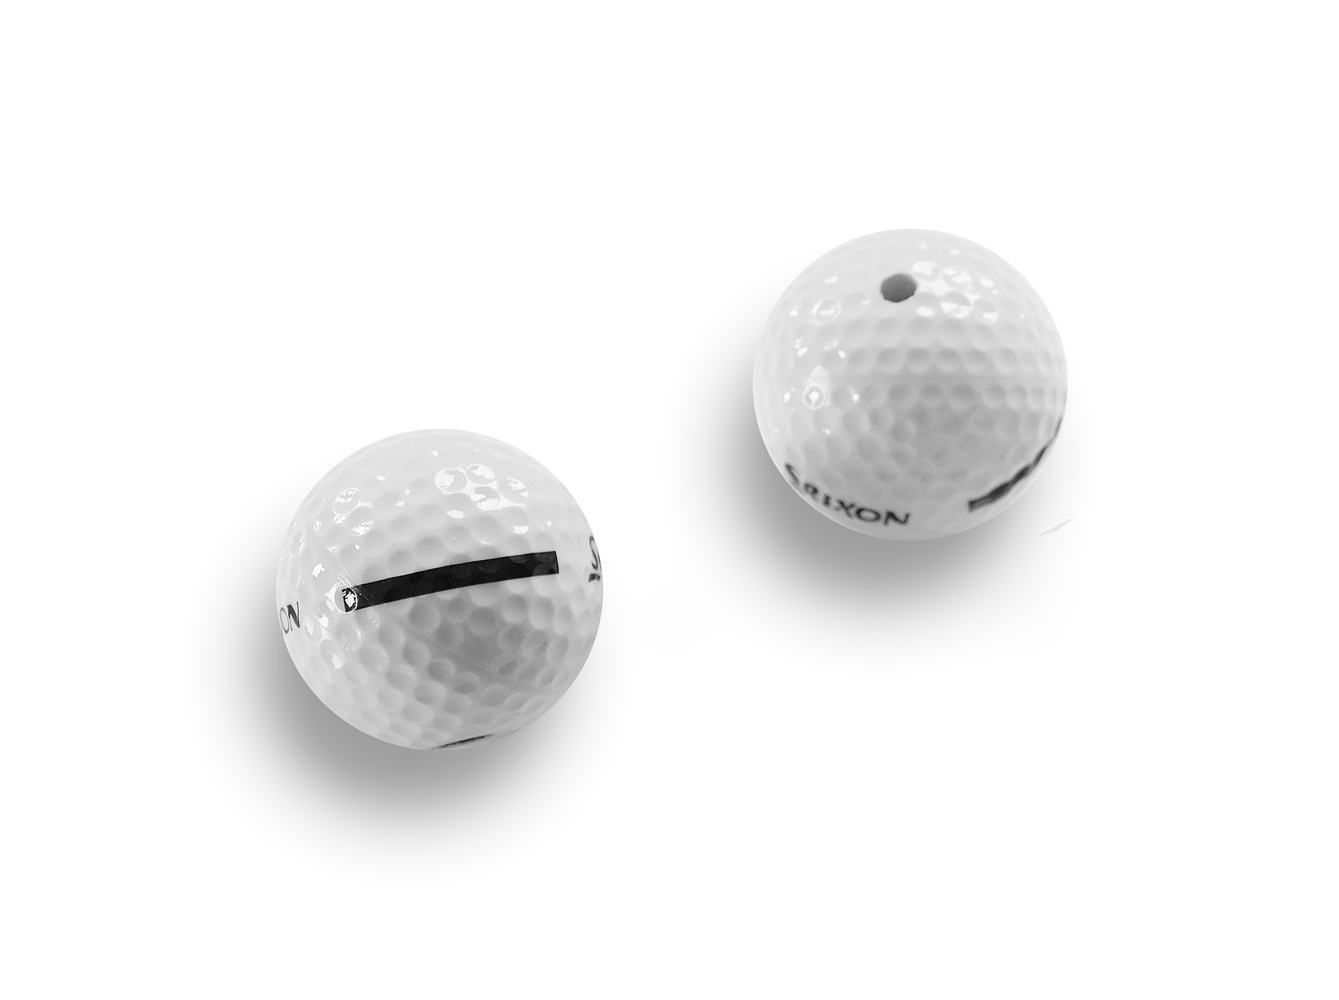 sg3000 Replace. Balls - 2 pcs. Pack